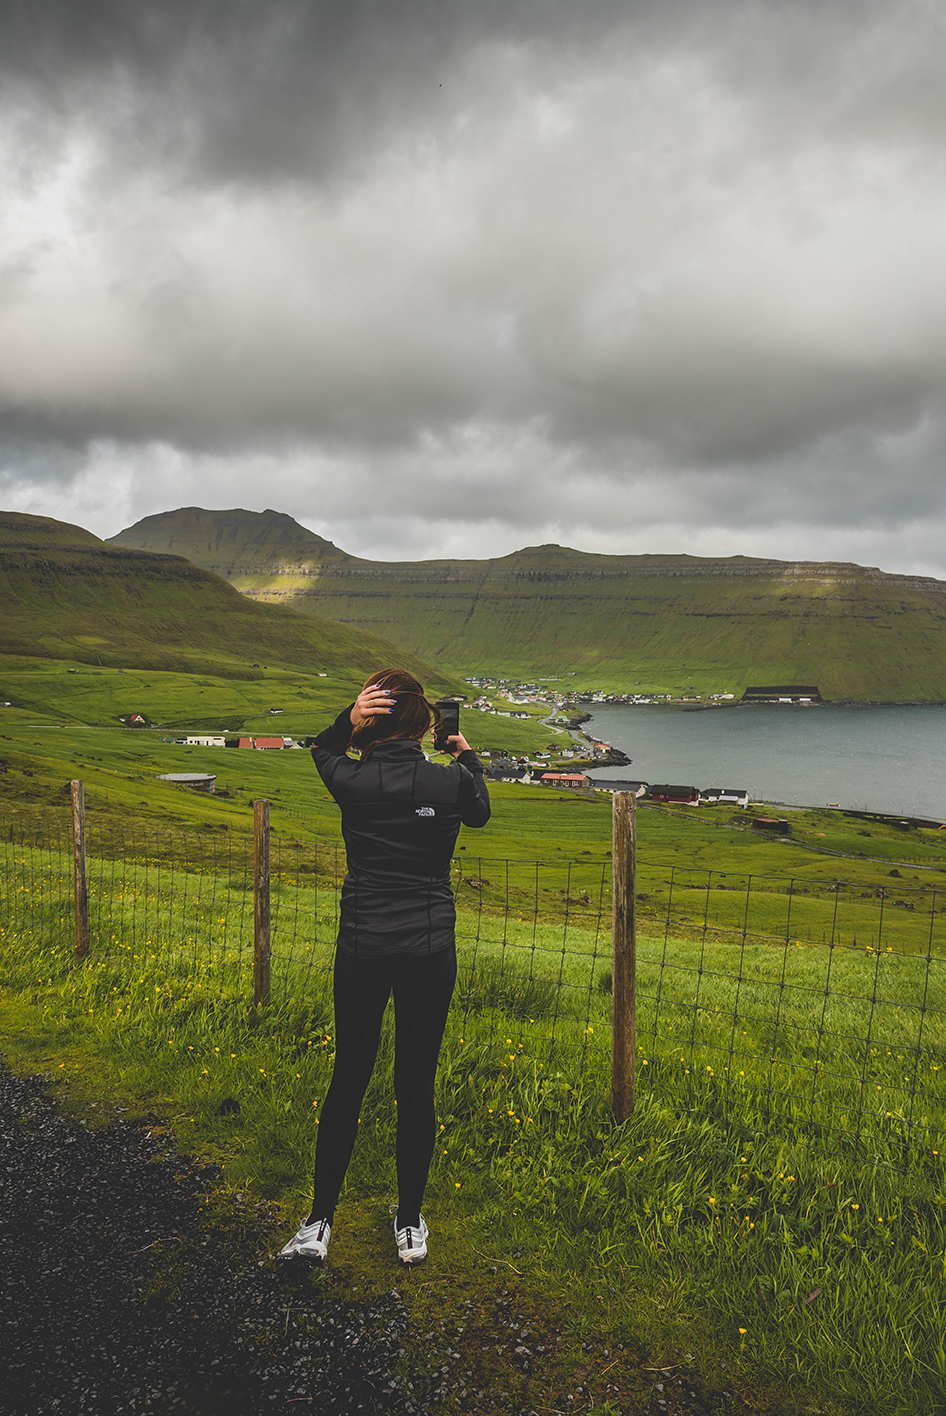 FaroeIslands_Day2_23-6-17_TAL-57.jpg